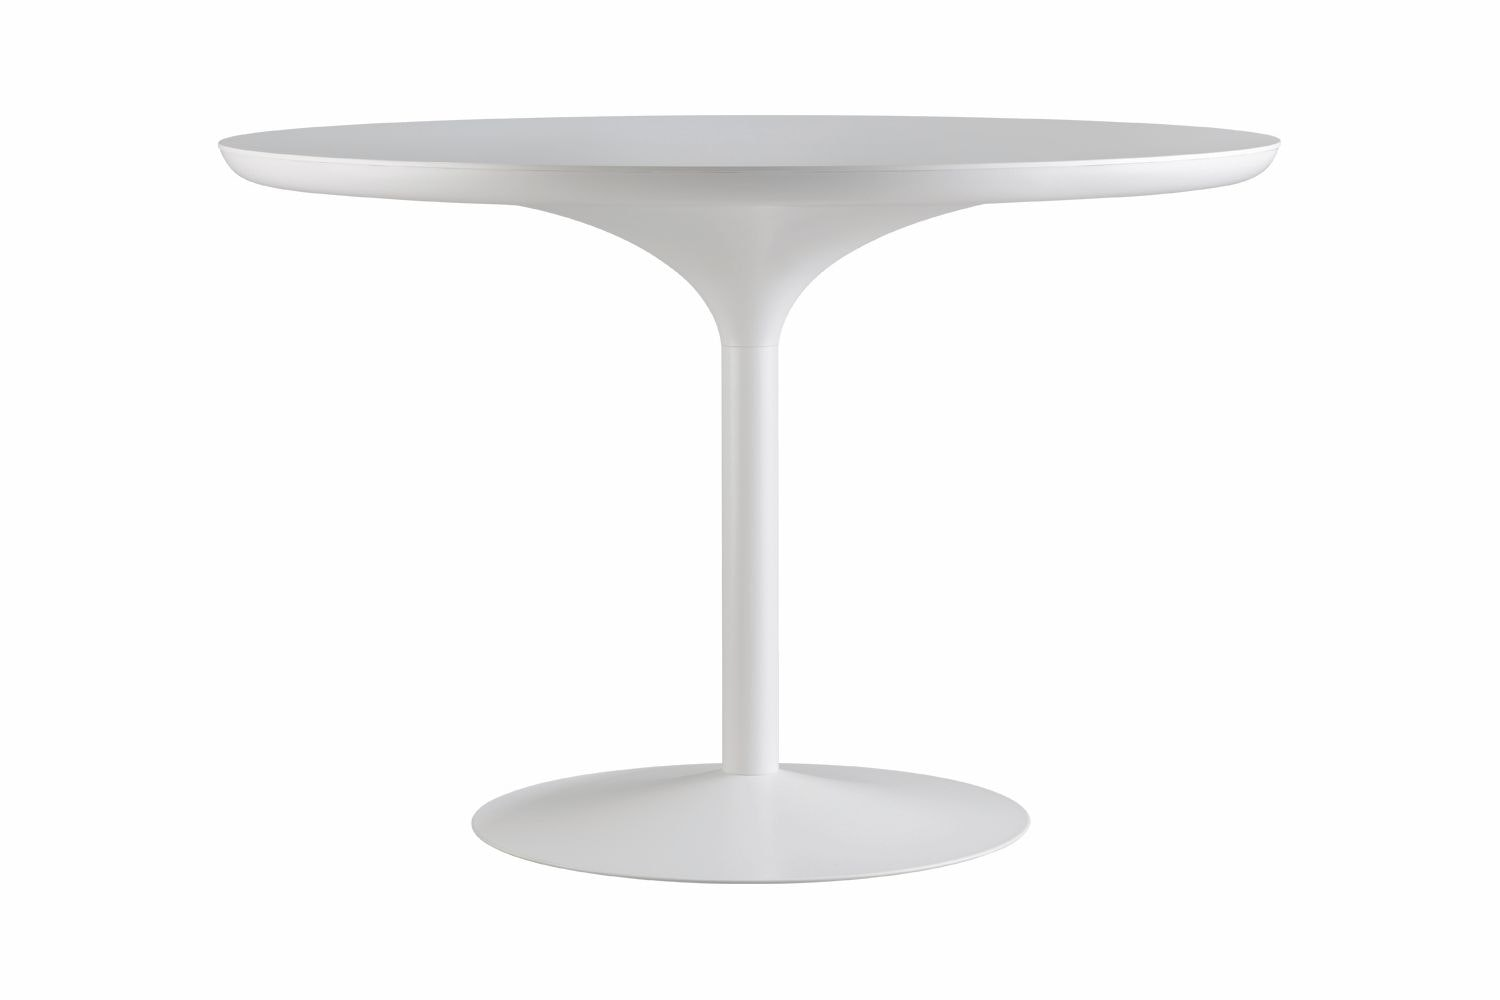 Panton Table by Verner Panton for Verpan